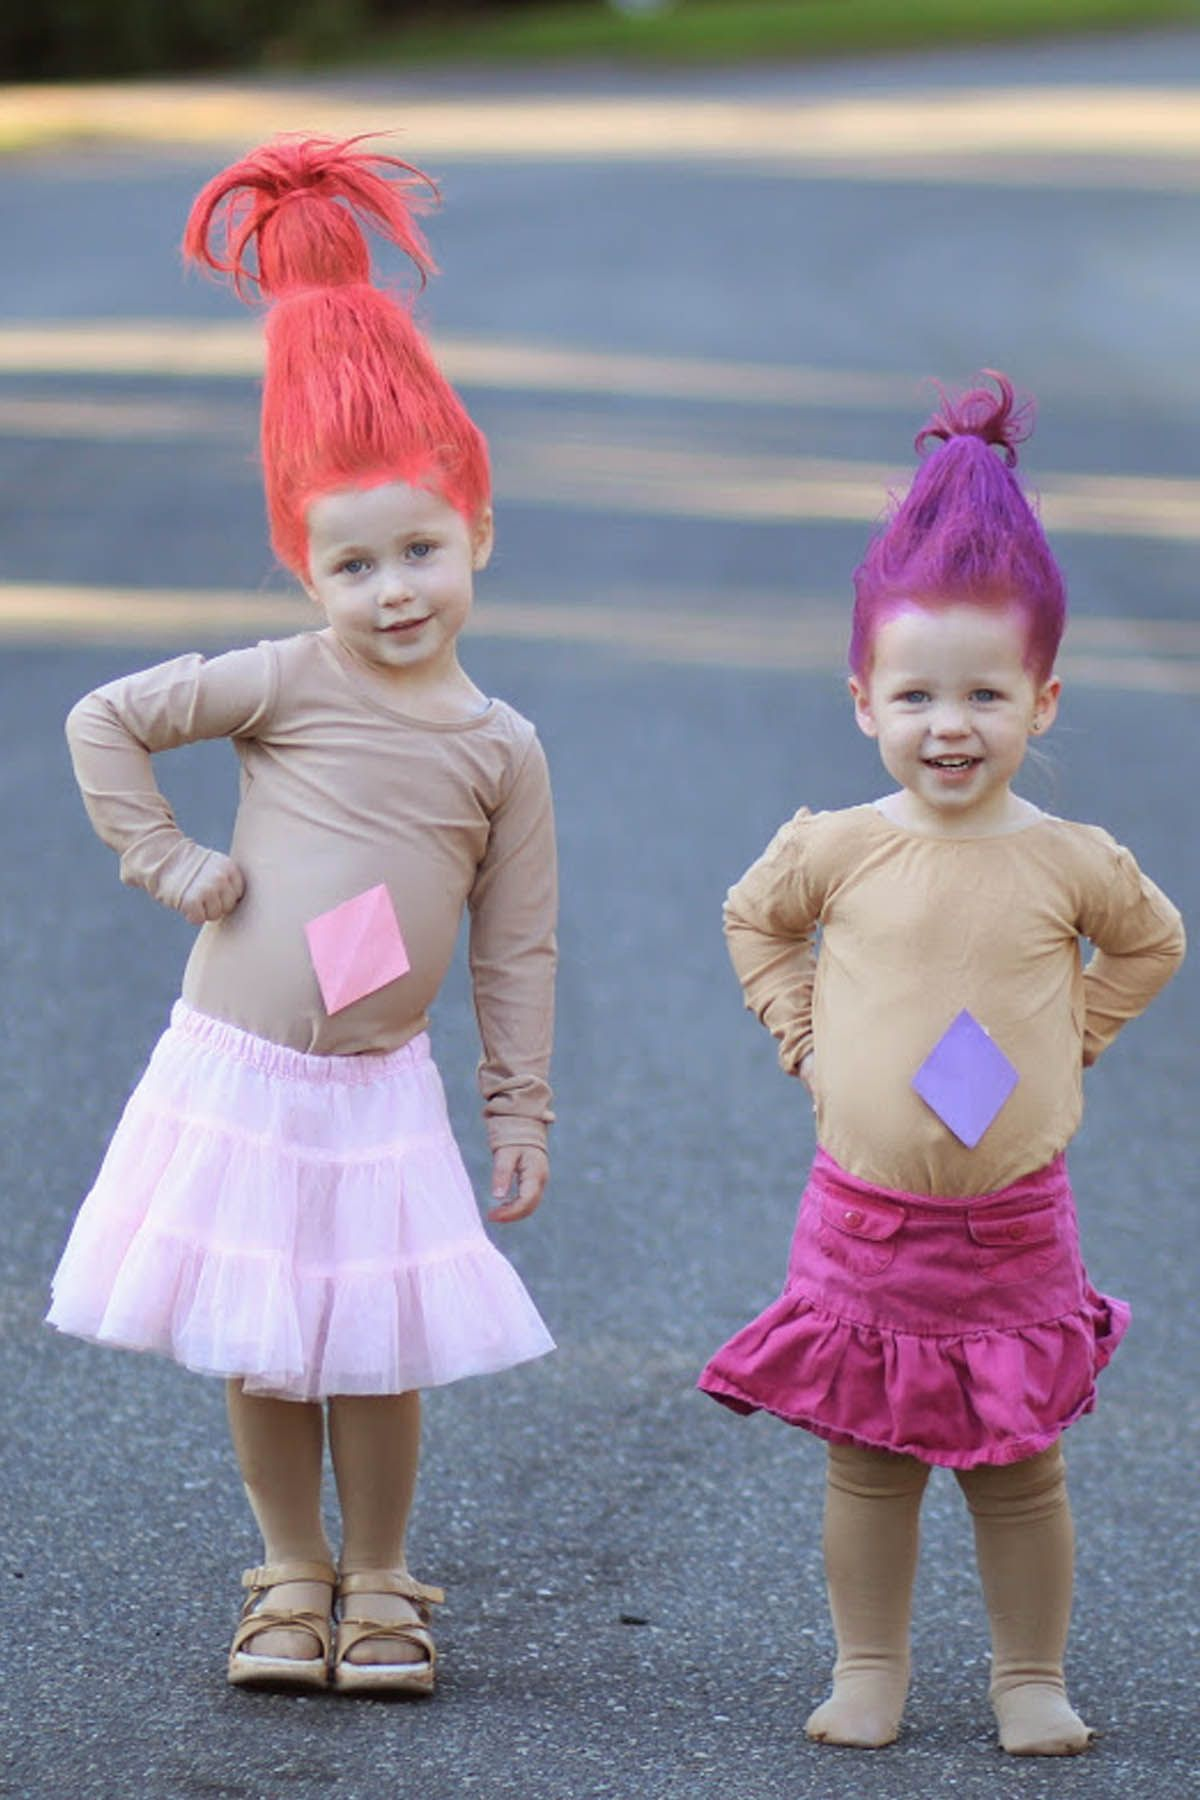 25 Cute Baby Halloween Costumes 2018 - Best Ideas for Boy and Girl Infant and Toddler Costumes  sc 1 st  Womanu0027s Day & 25 Cute Baby Halloween Costumes 2018 - Best Ideas for Boy and Girl ...